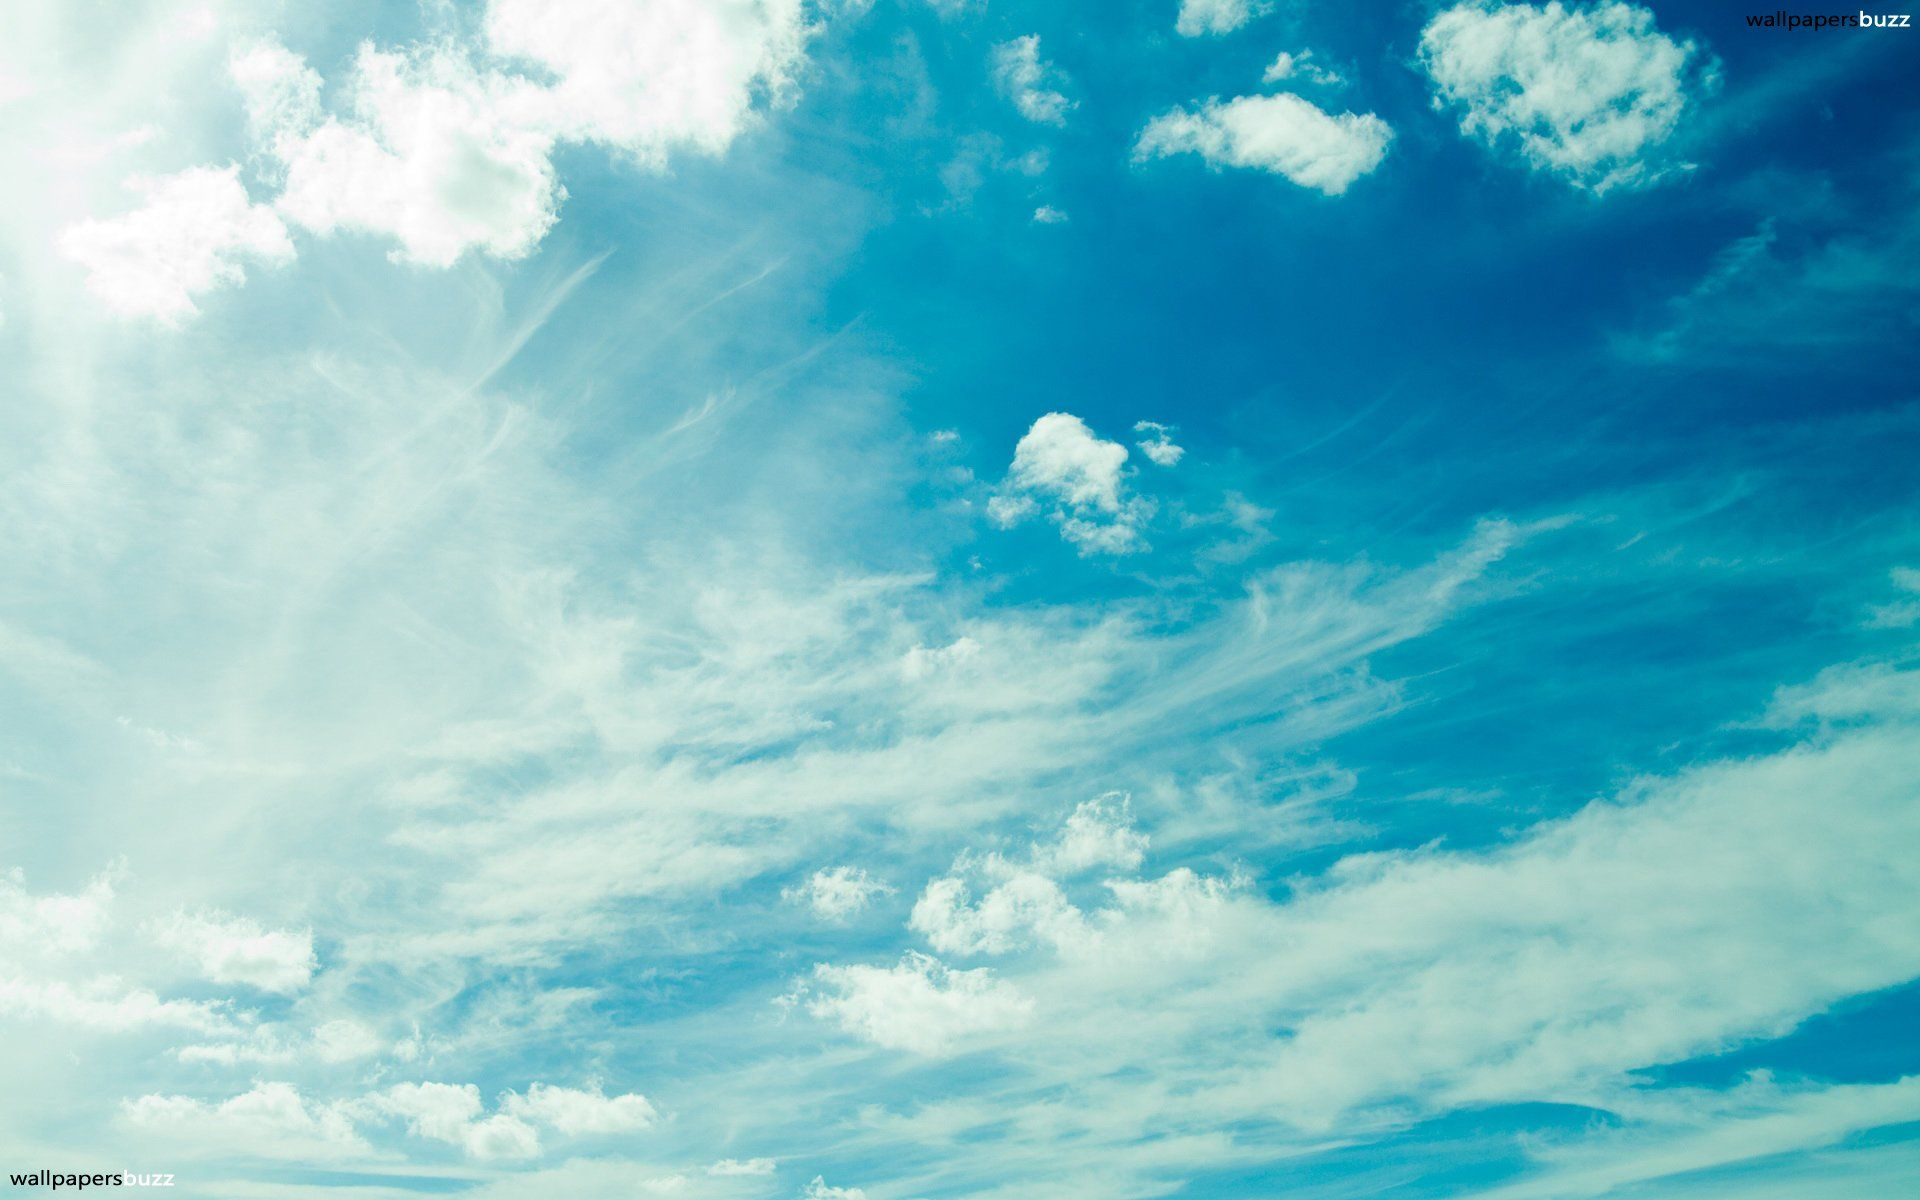 Wallpapers Romantic Couple Ments For Radiant Blue Sky Hd